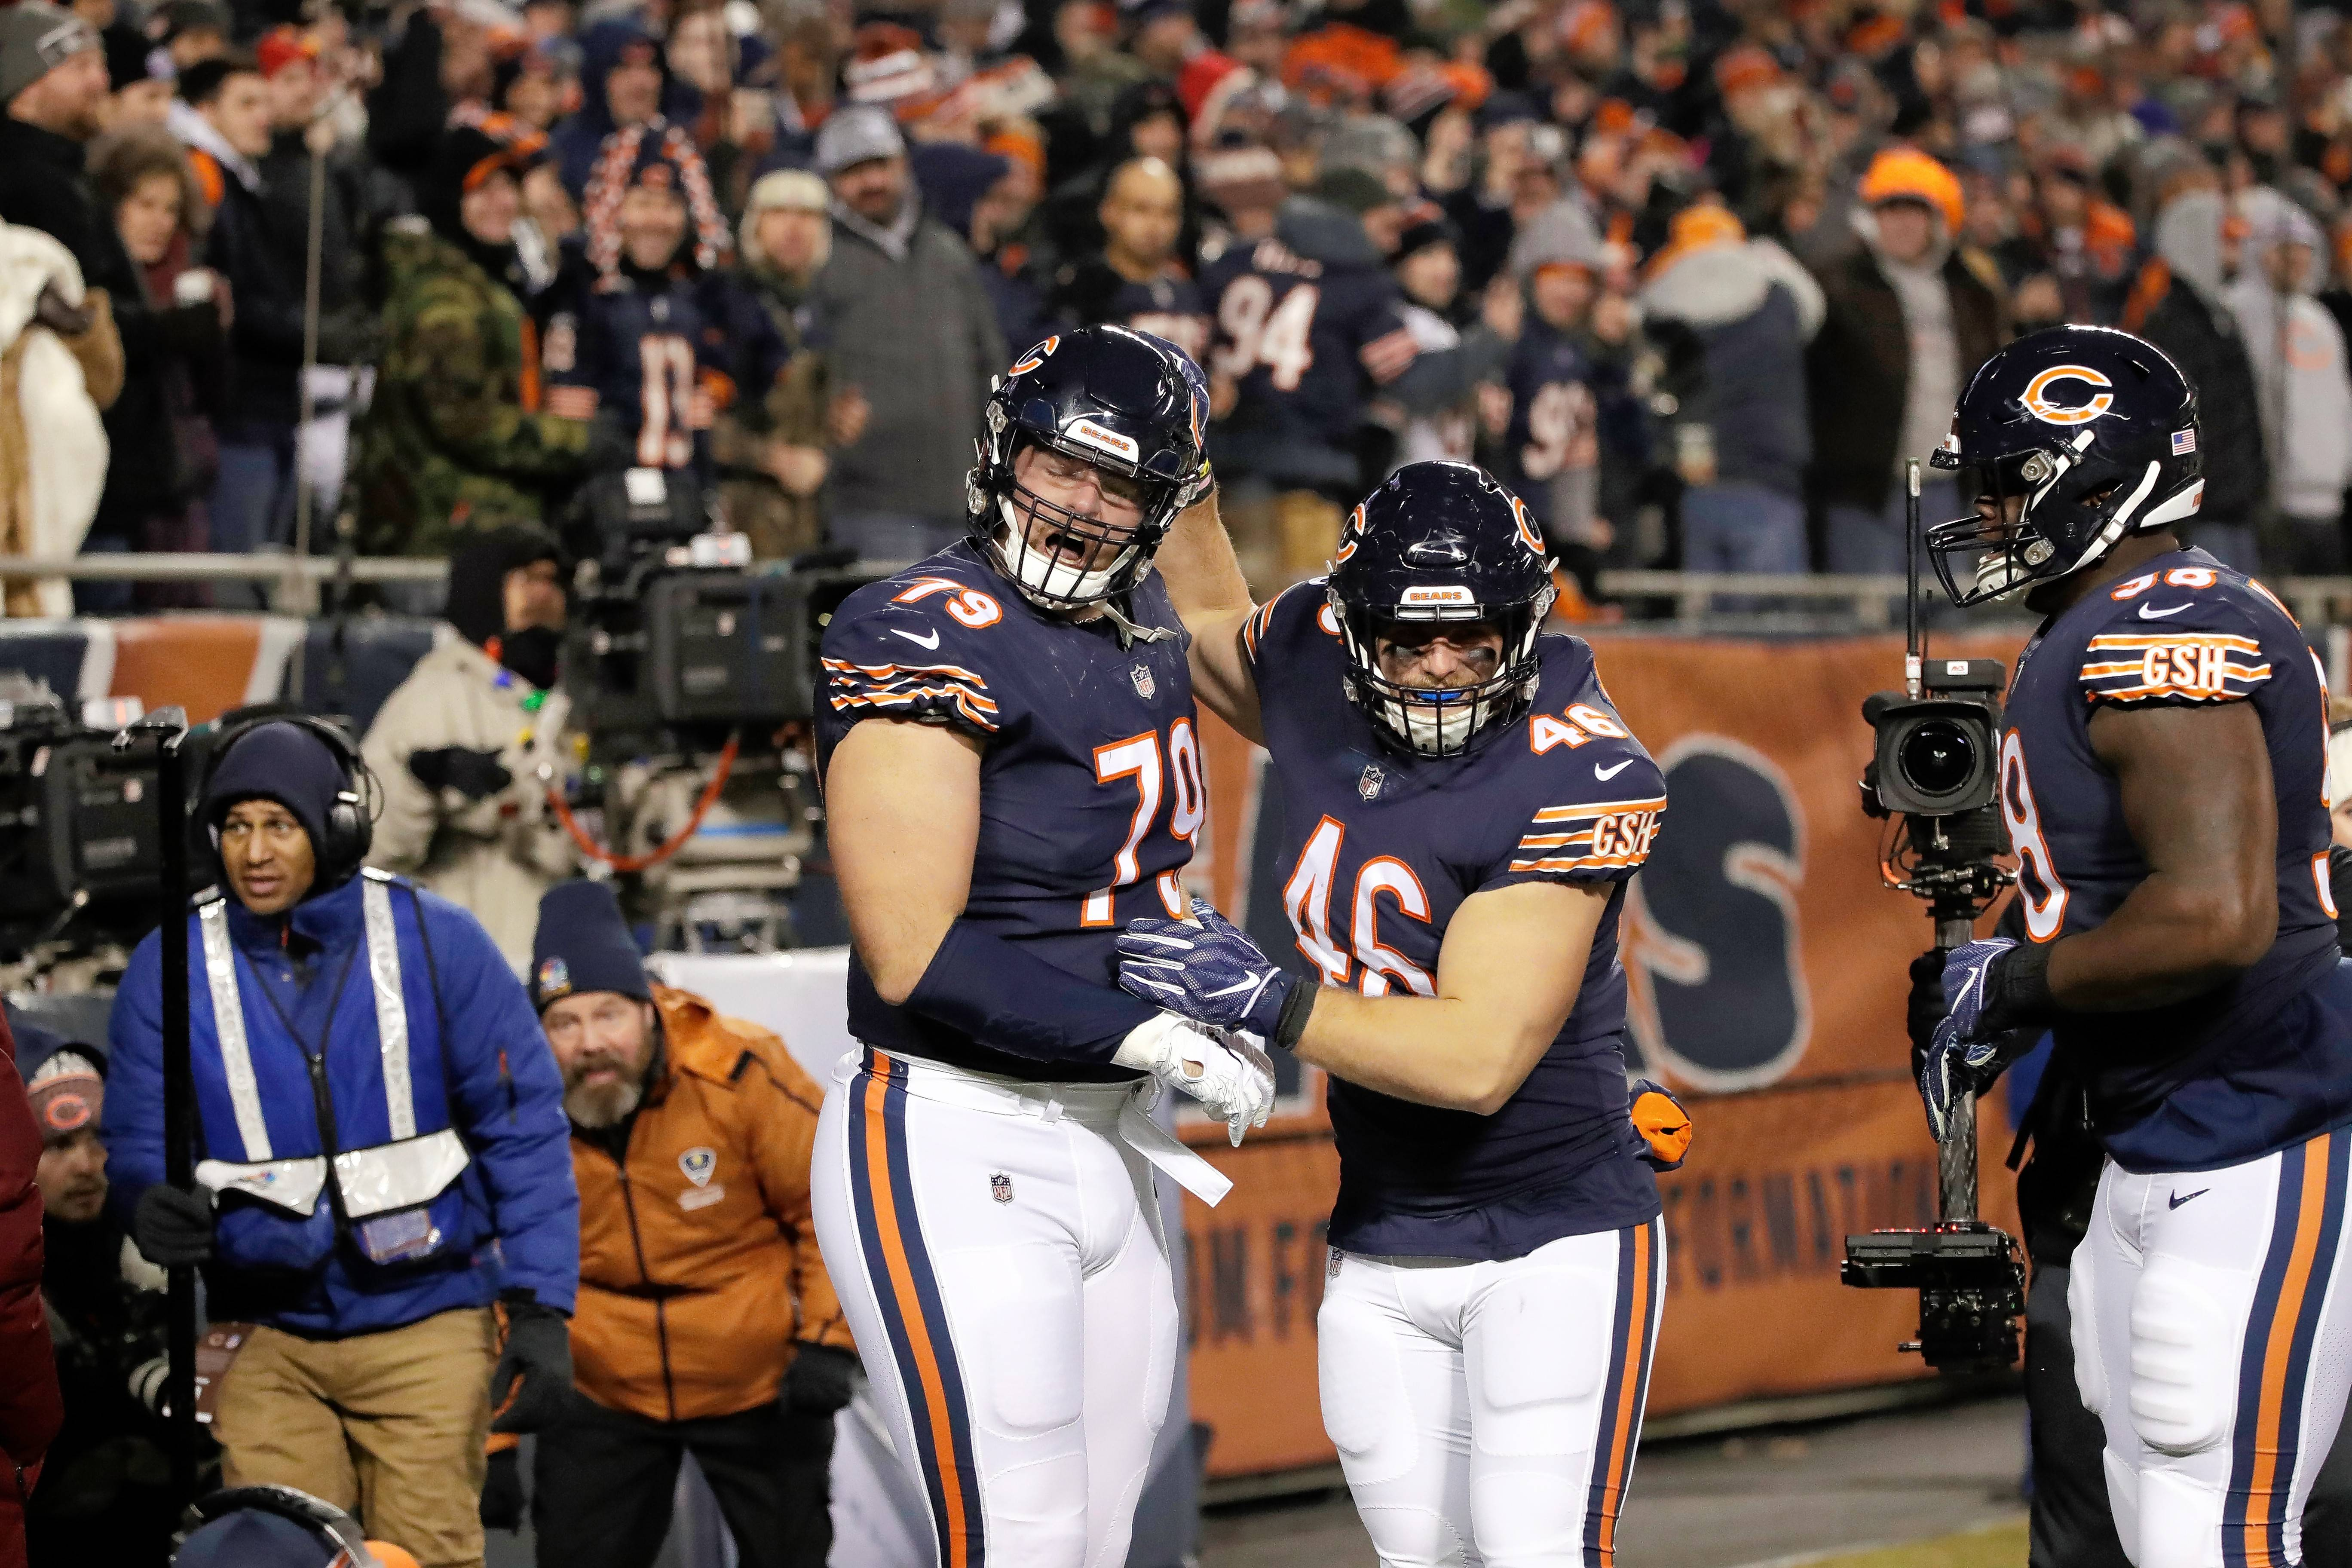 Chicago Bears offensive tackle Bradley Sowell (79) celebrates a touchdown with fullback Michael Burton (46) during the second half of an NFL football game against the Los Angeles Rams Sunday, Dec. 9, 2018, in Chicago.